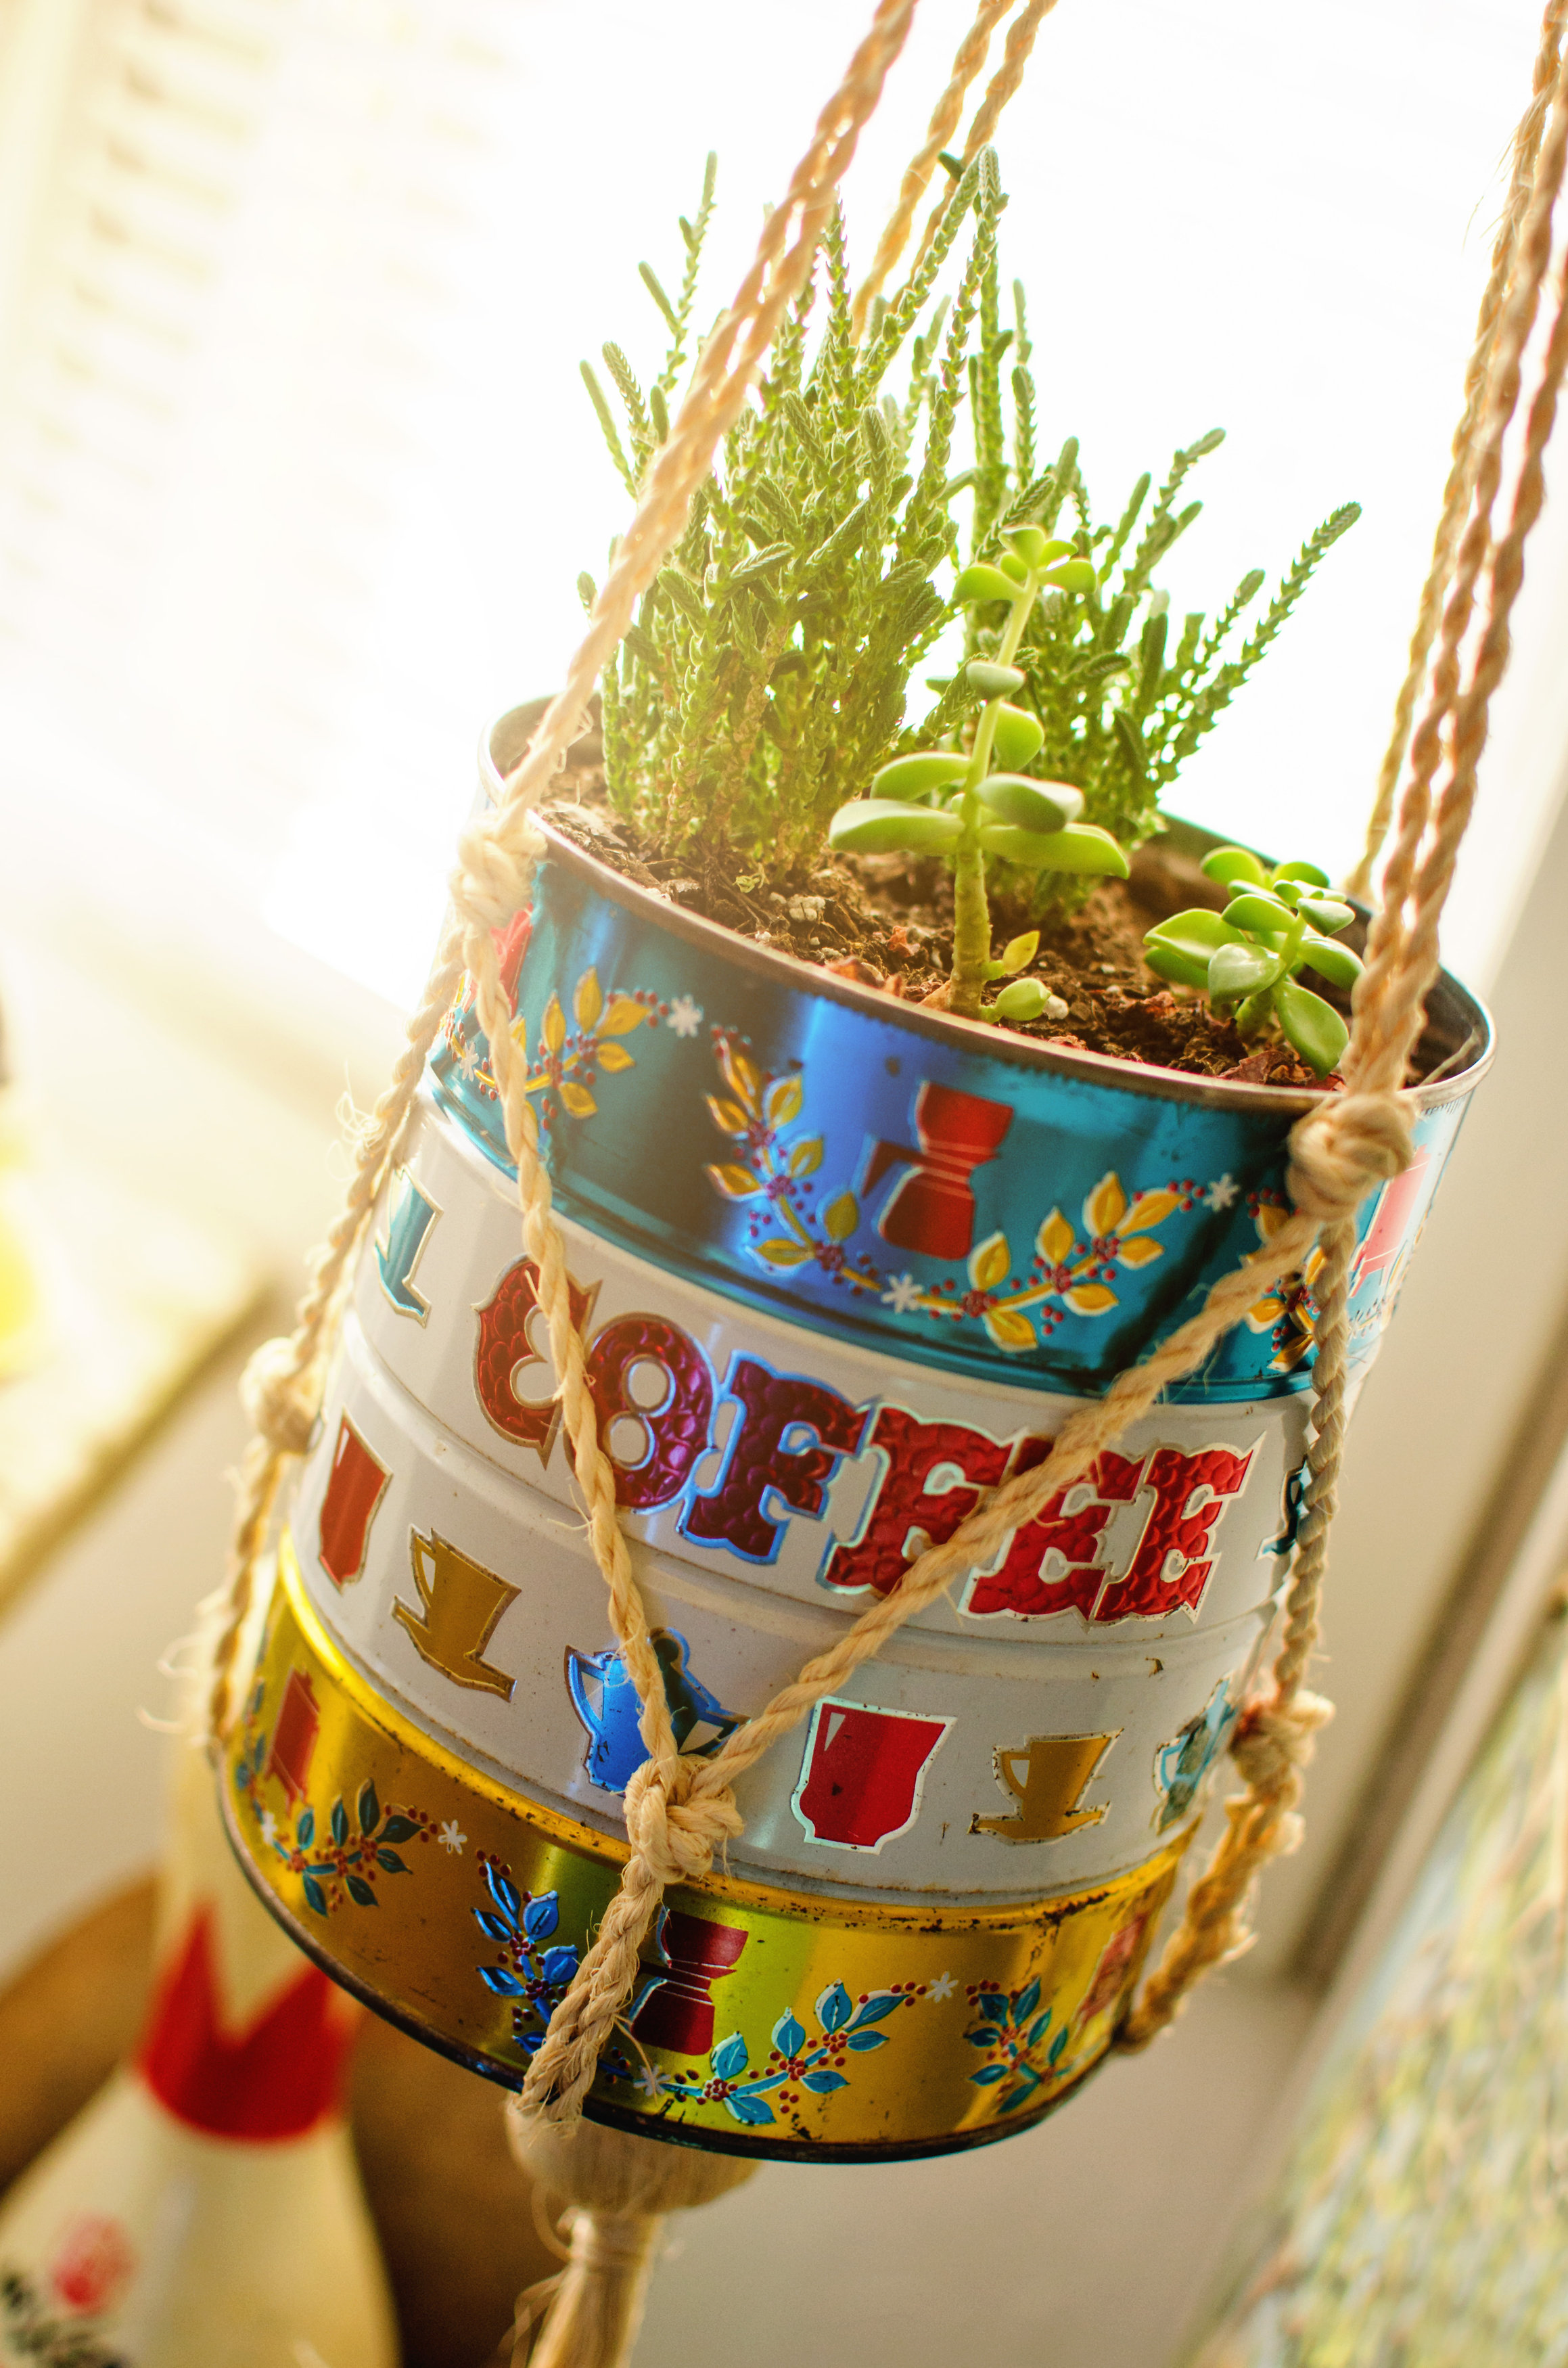 Vintage coffee can repurposed as a planter. H.Prall & Co. | hprallandco.com